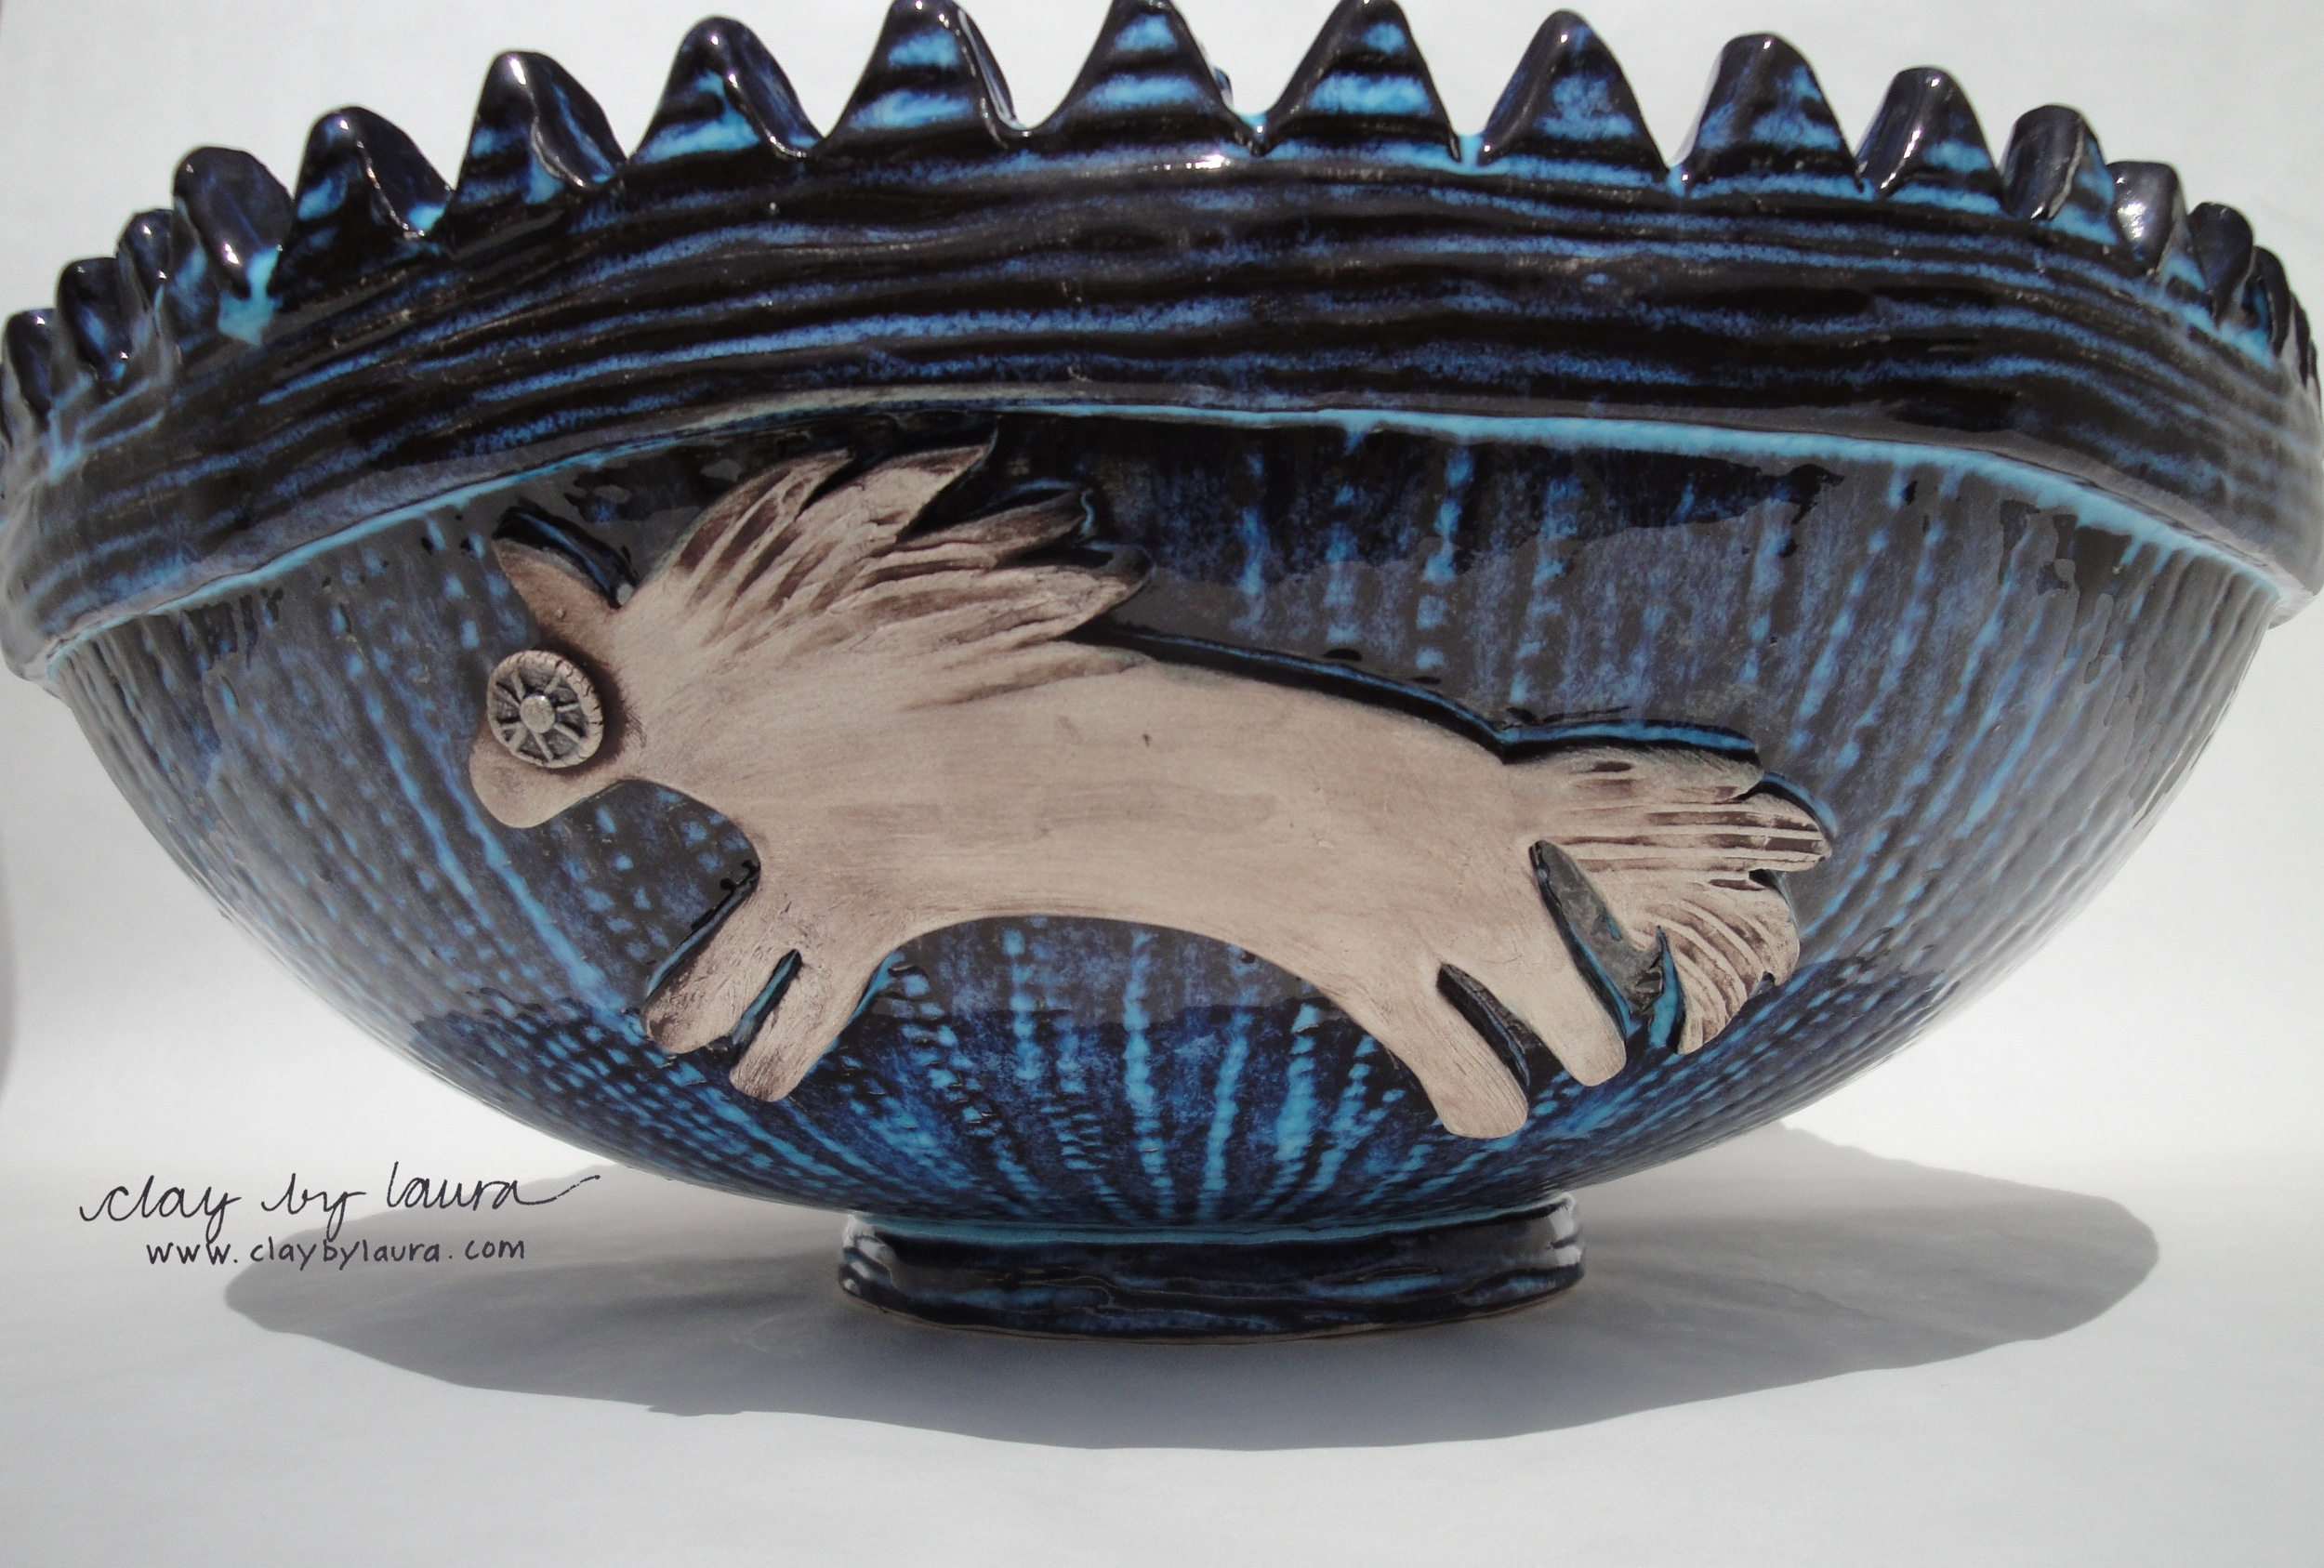 Here is a photo of the commissioned bowl I've been working on.